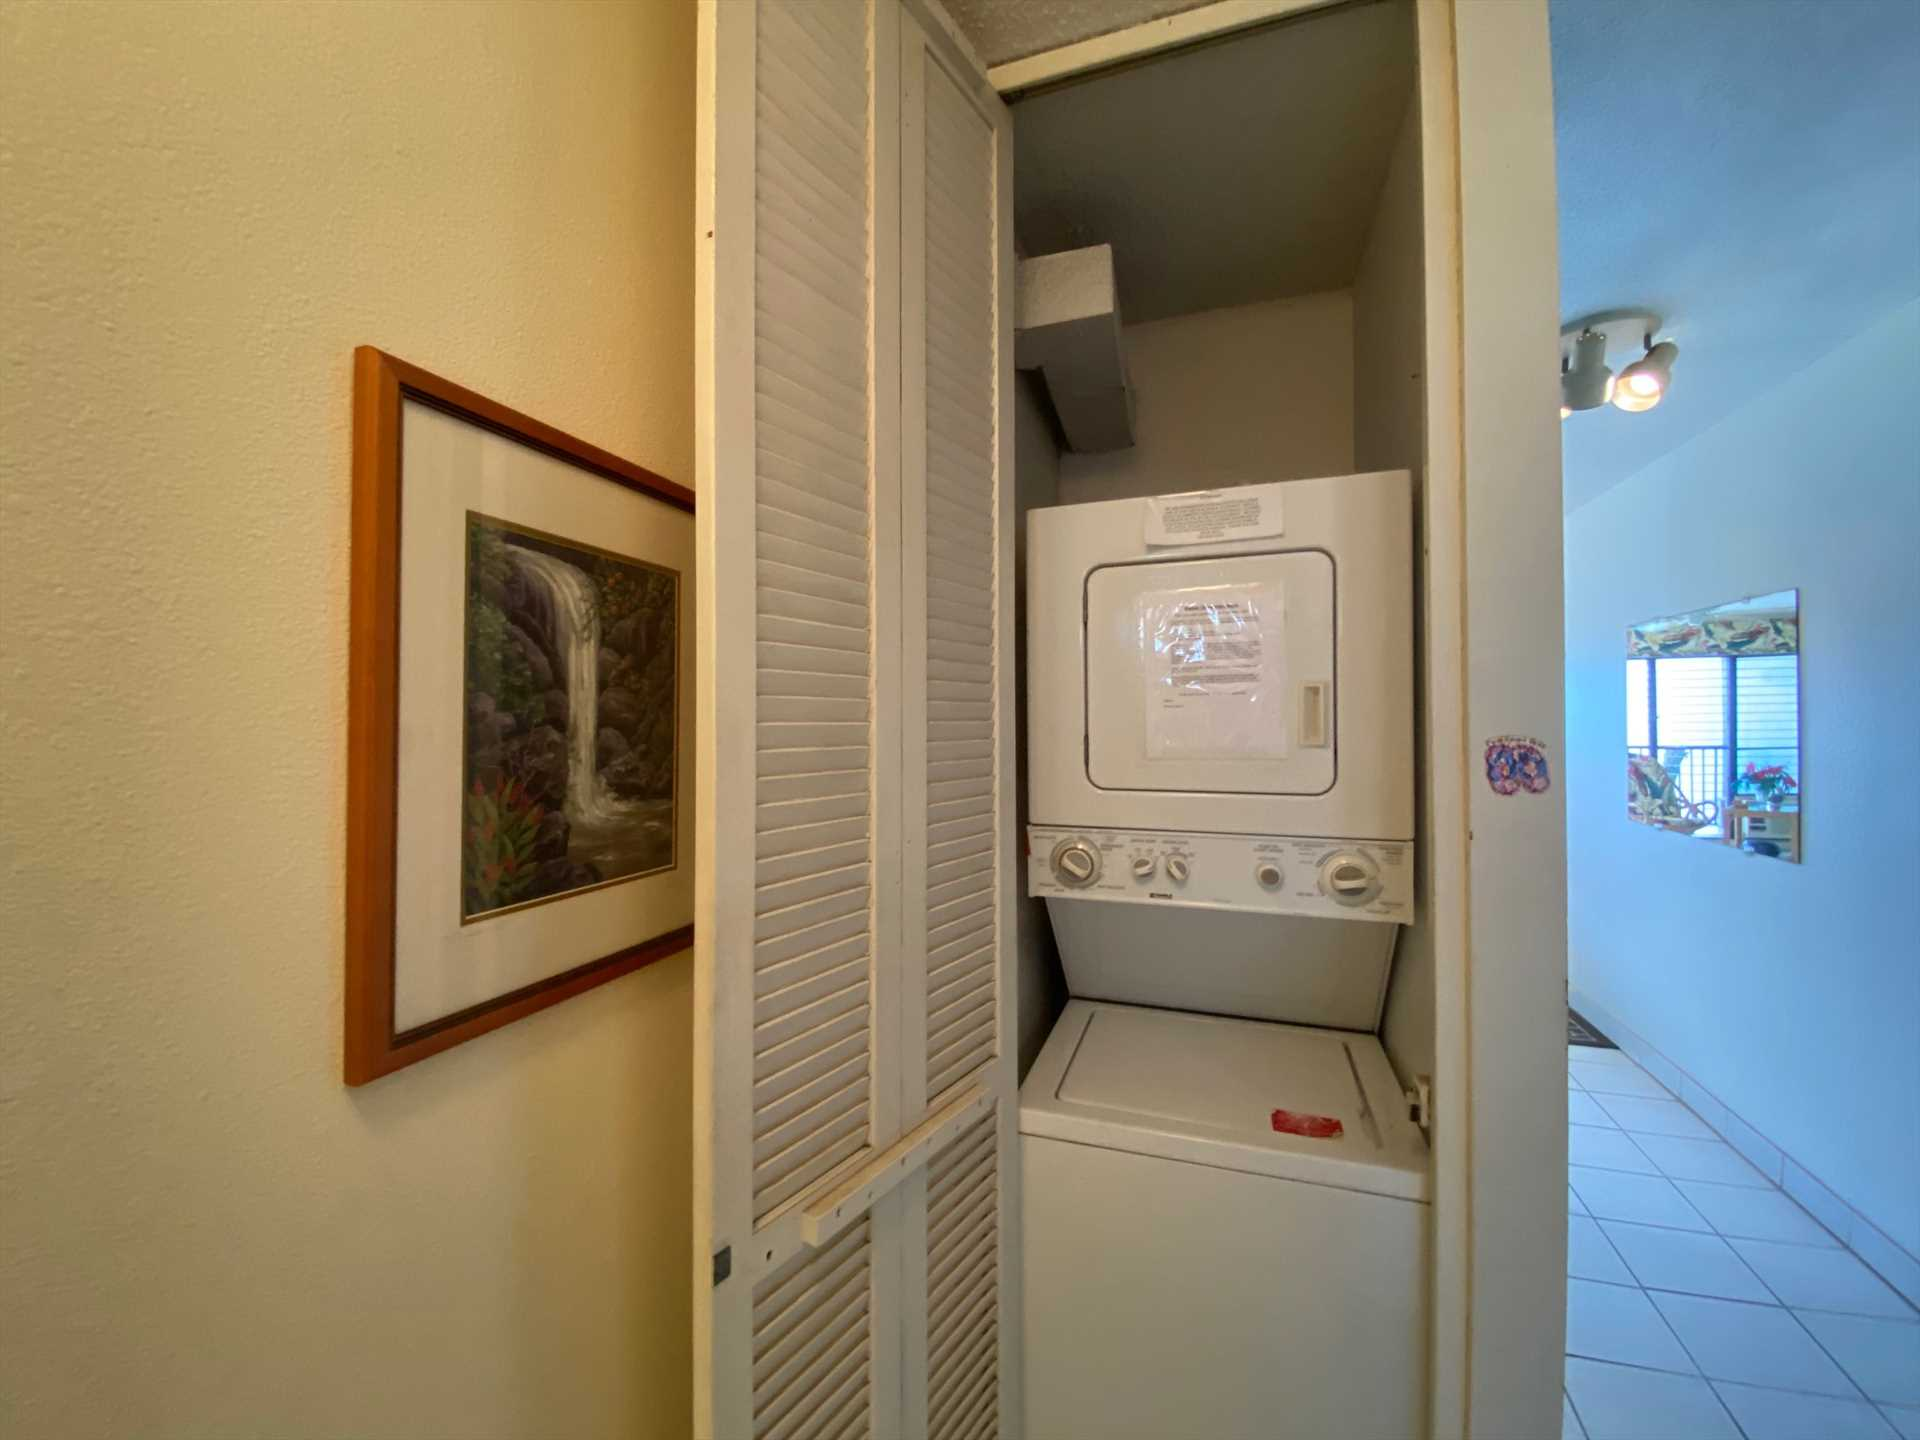 Washer and dryer conveniently located inside condo